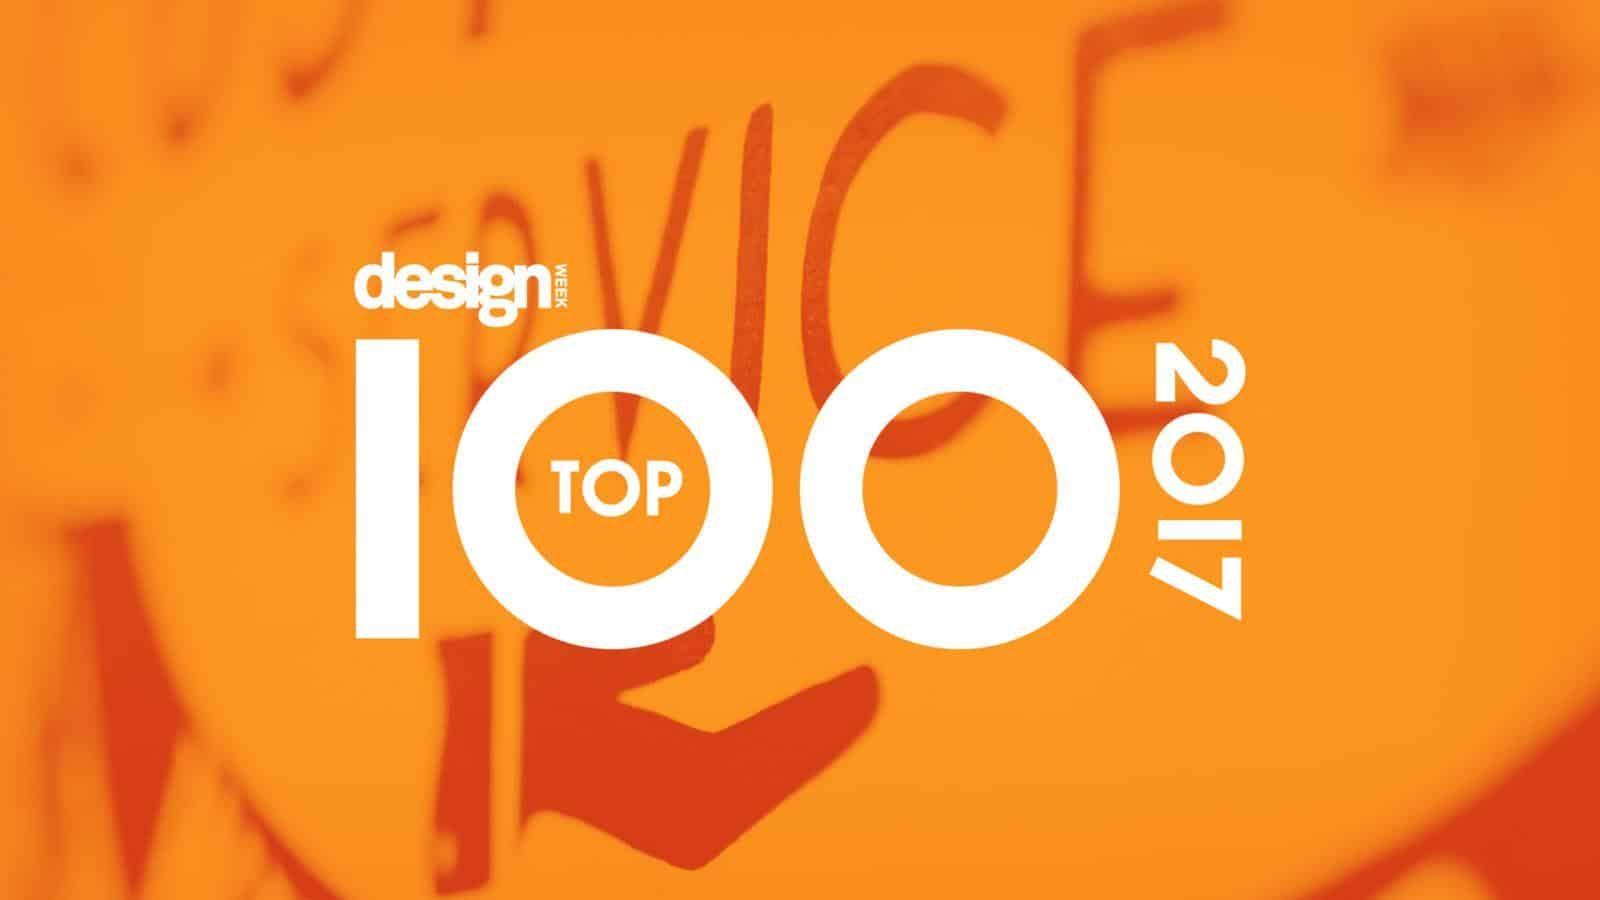 Better brand engagement for global brands leads to Design Week Top 100 recognition